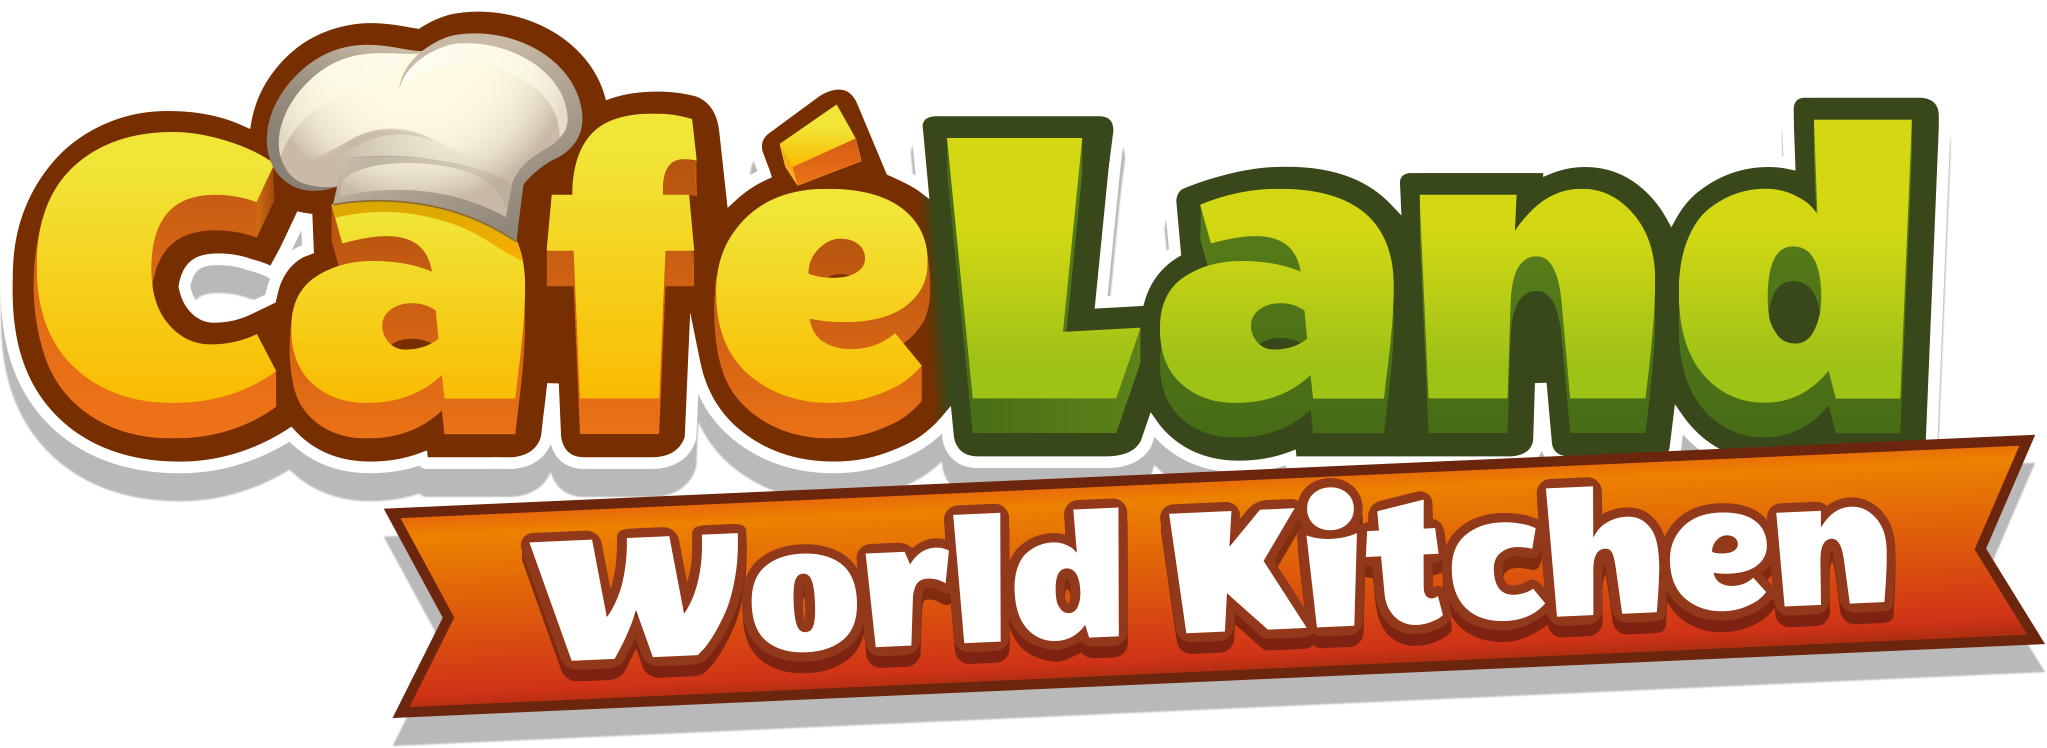 Cafeland World Kitchen Help Center home page